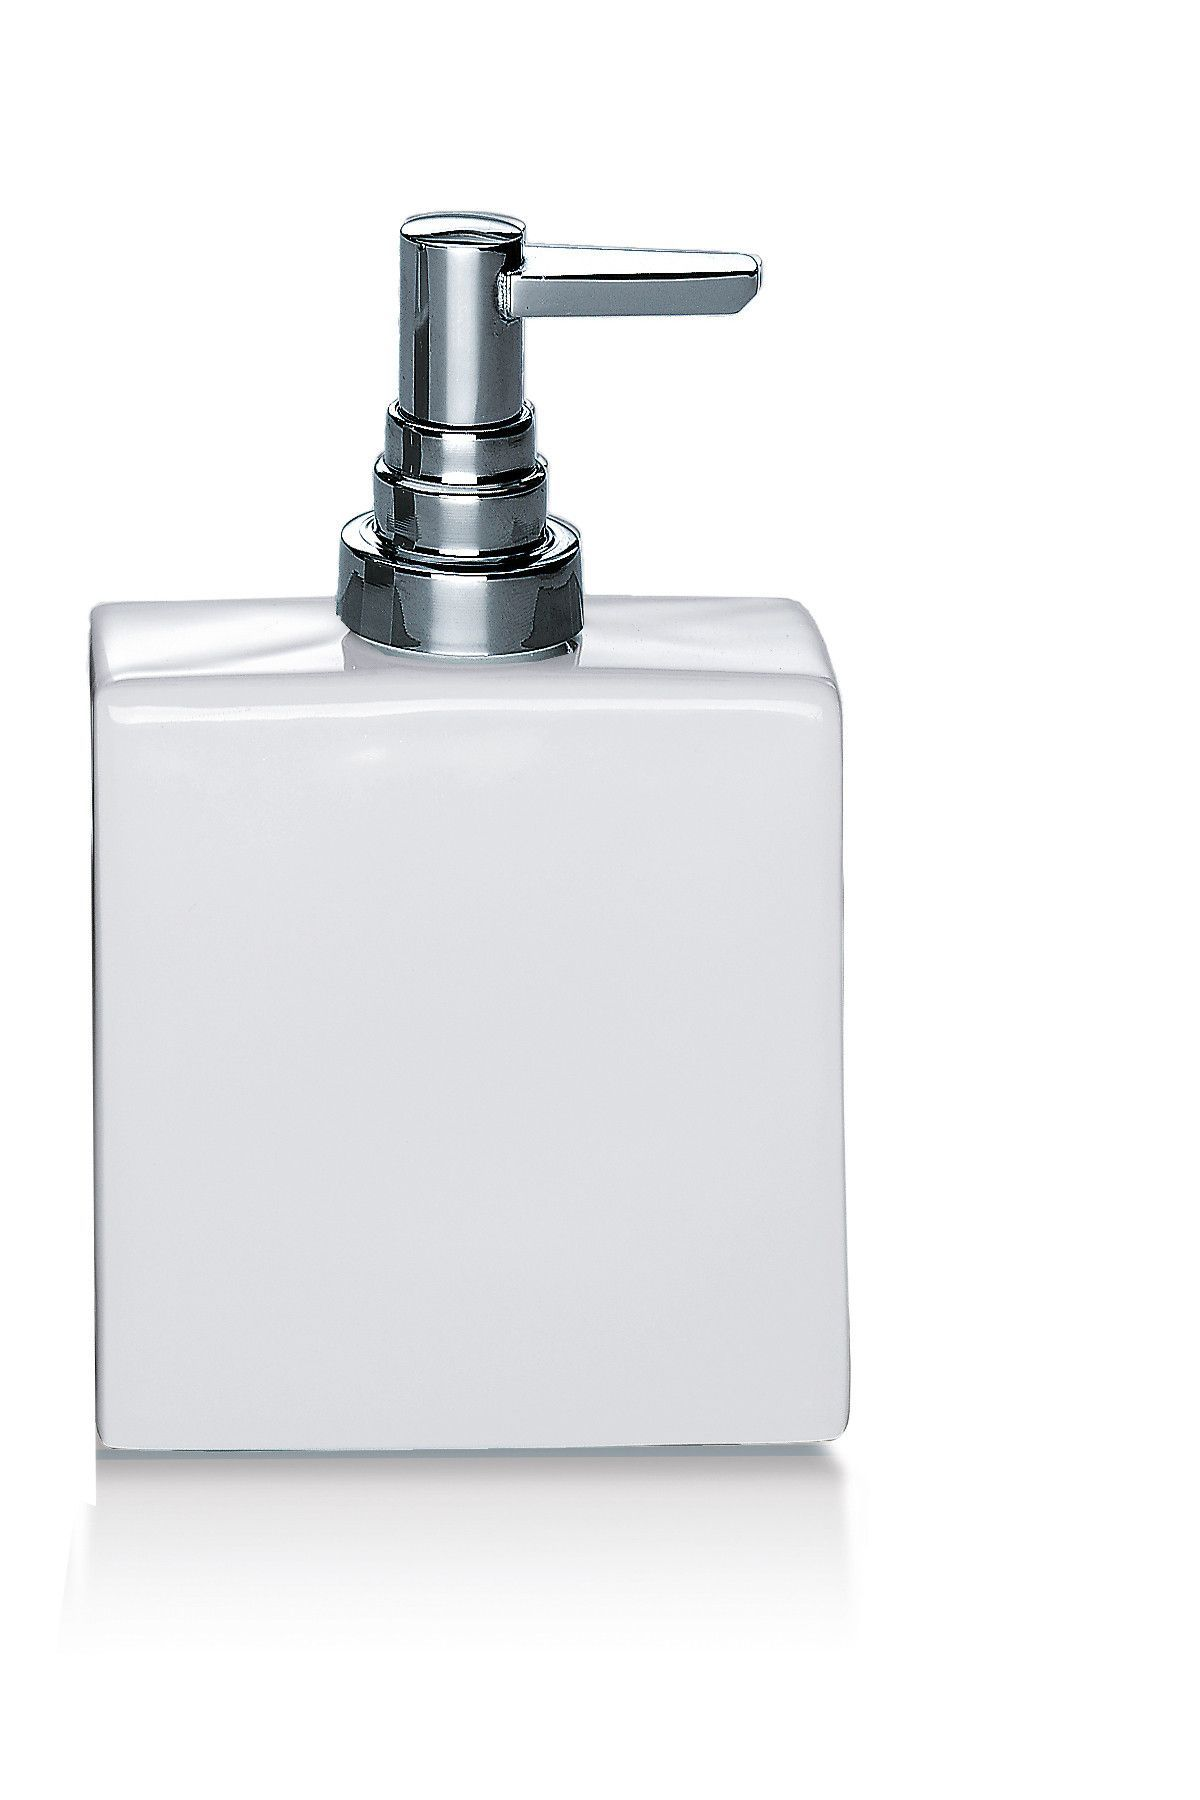 Dw 6290 Soap Lotion Dispenser Pump For Kitchen Bathroom